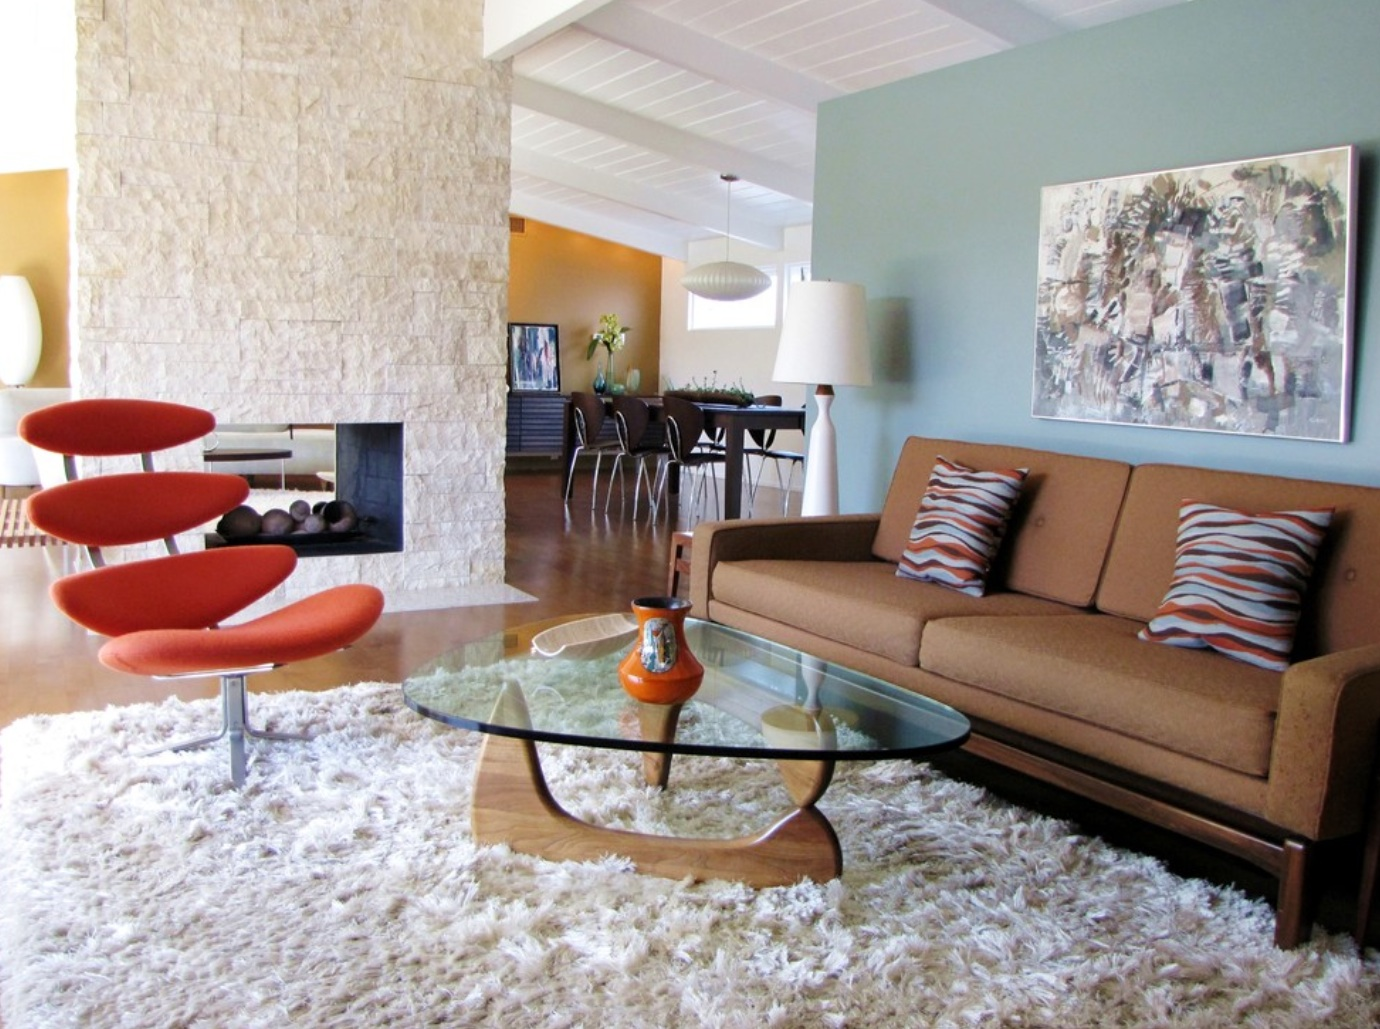 Home In Brentwood California Graphic Midcentury Modern Furnishings